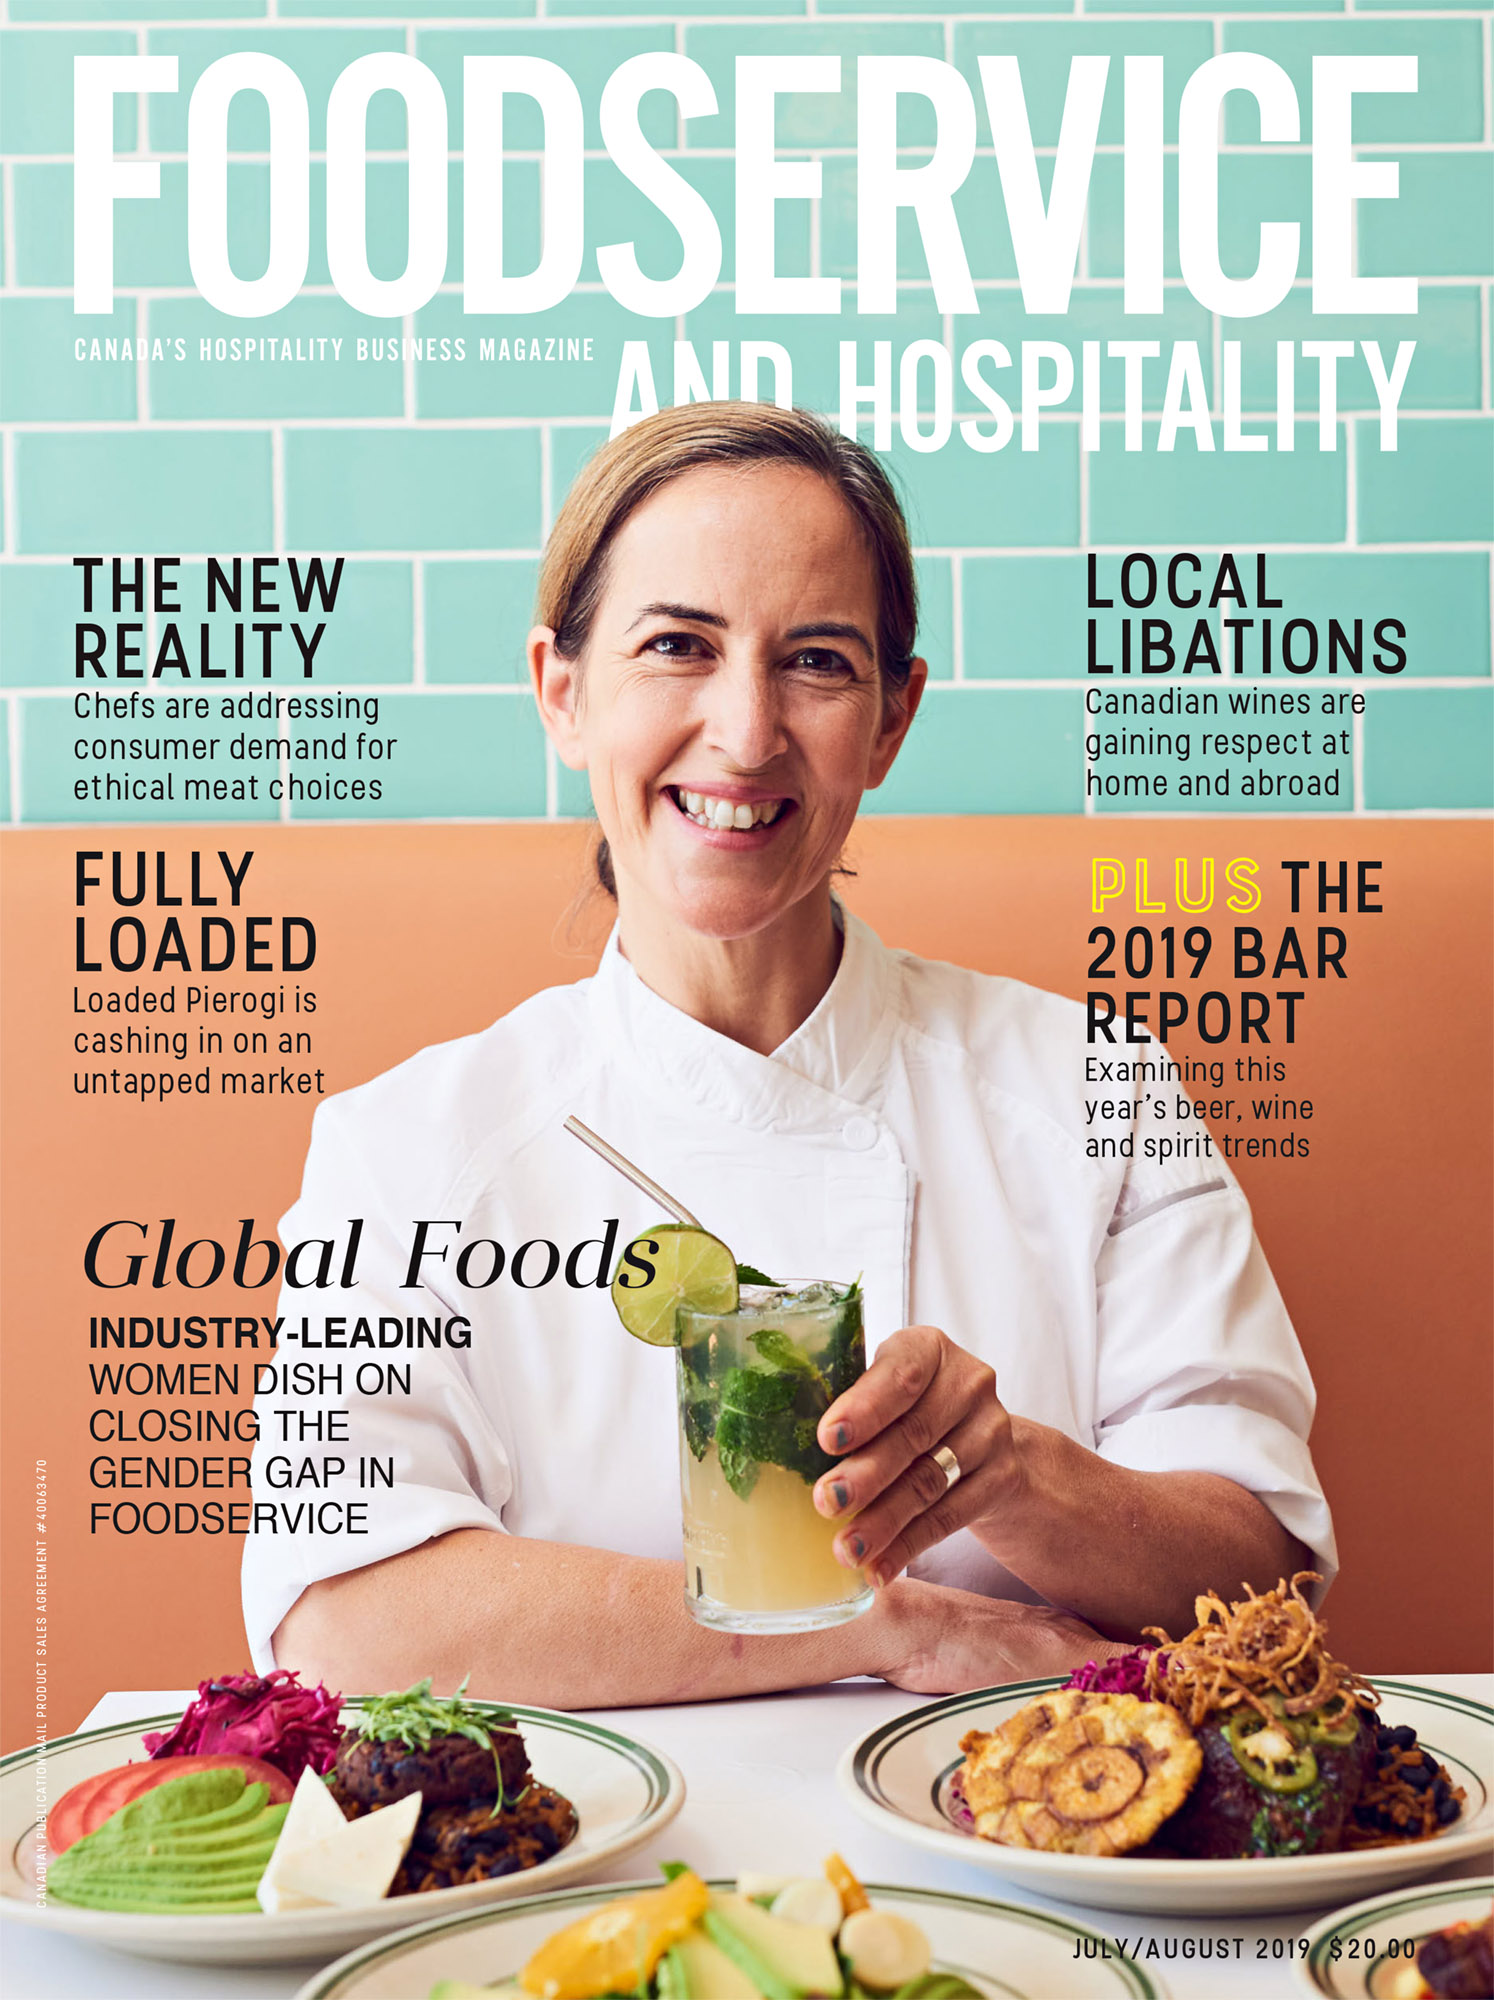 Cover of Foodservice and Hospitality Magazine showing smiling female chef seated at table with food